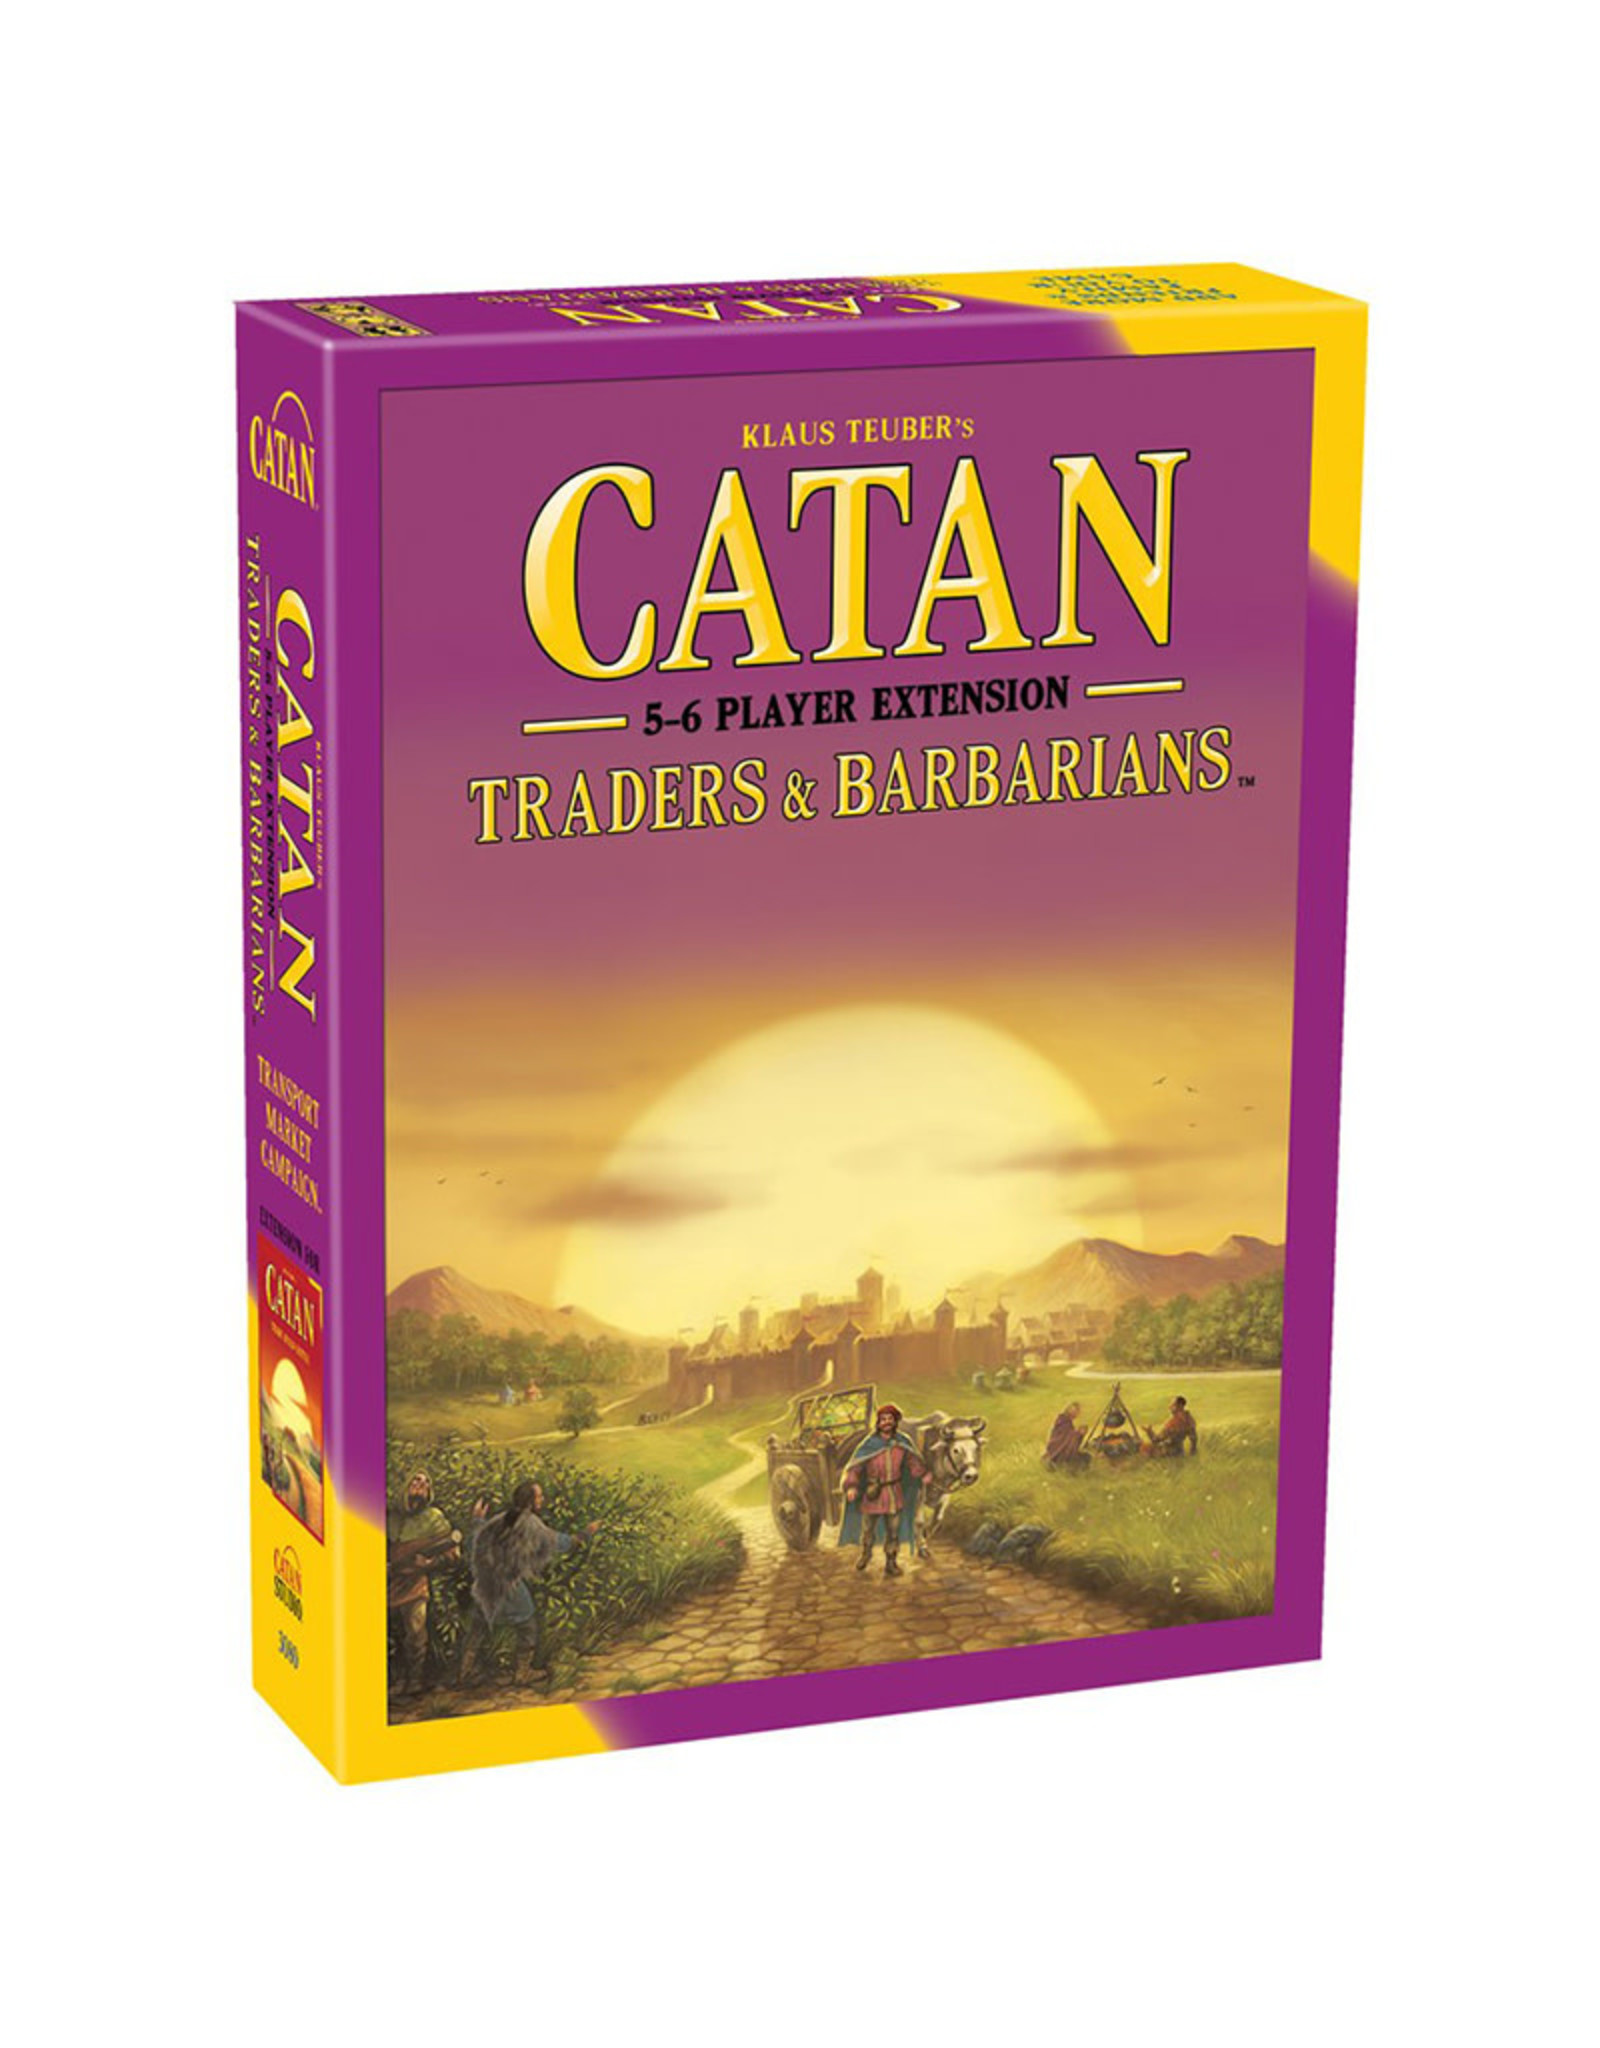 Catan Traders & Barbarians 5 - 6 Player Extension